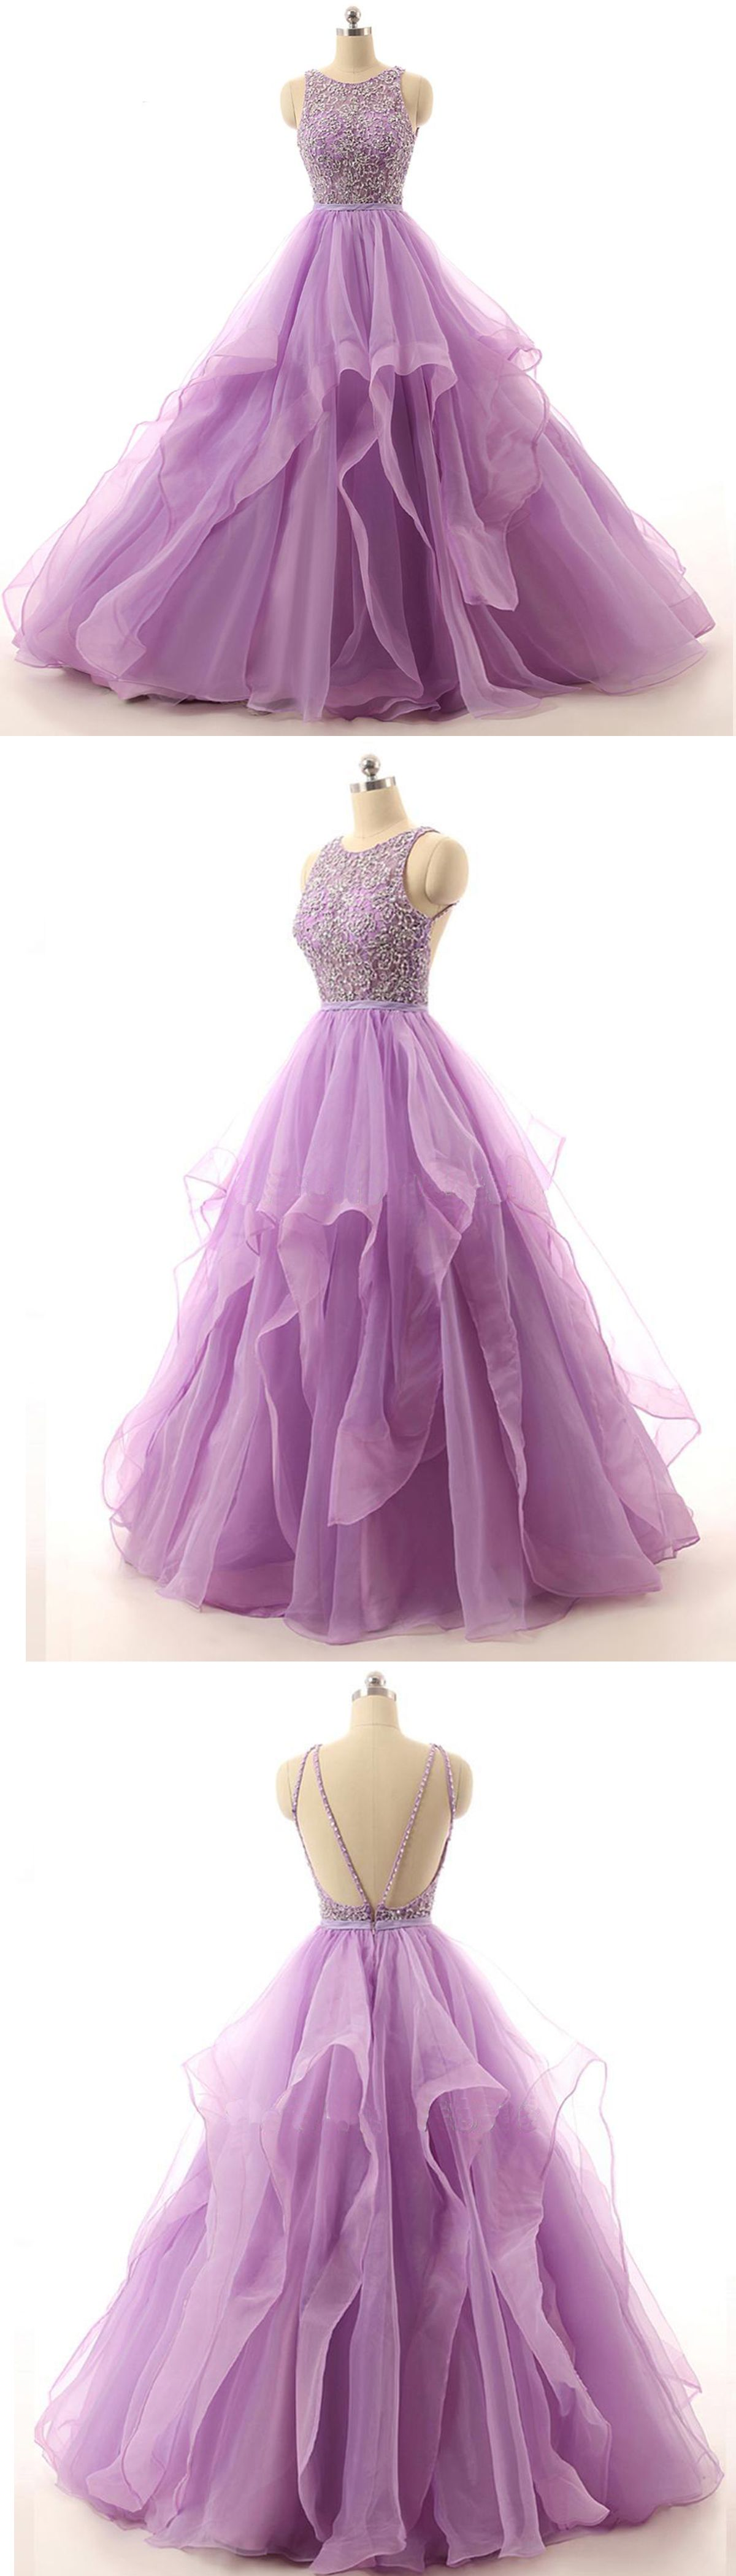 Lilac organza puffy special occasion dress long beaded open back